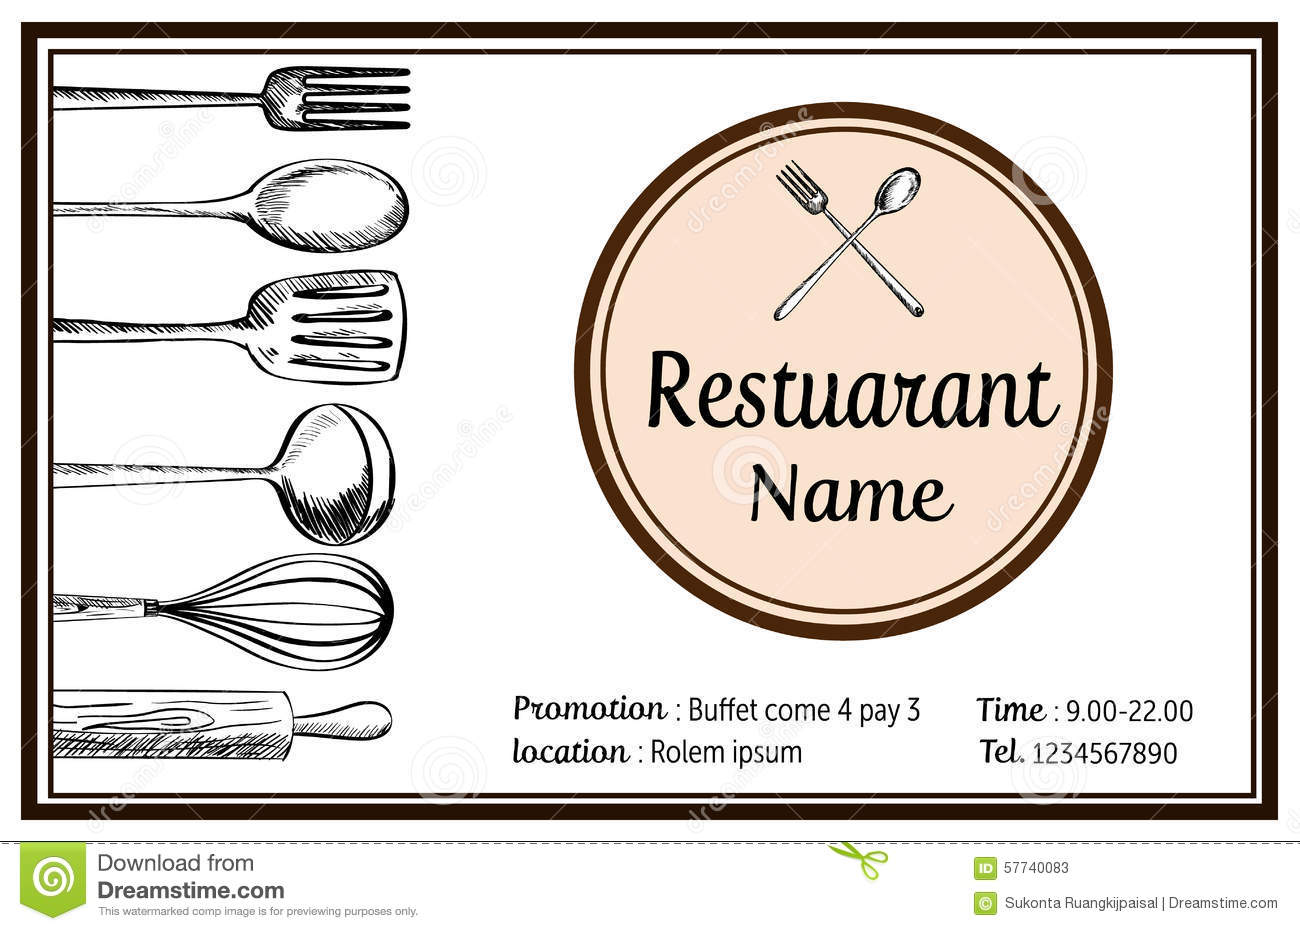 Restaurant Name Card Hand Drawn Doodle Vintage Tyle Vector